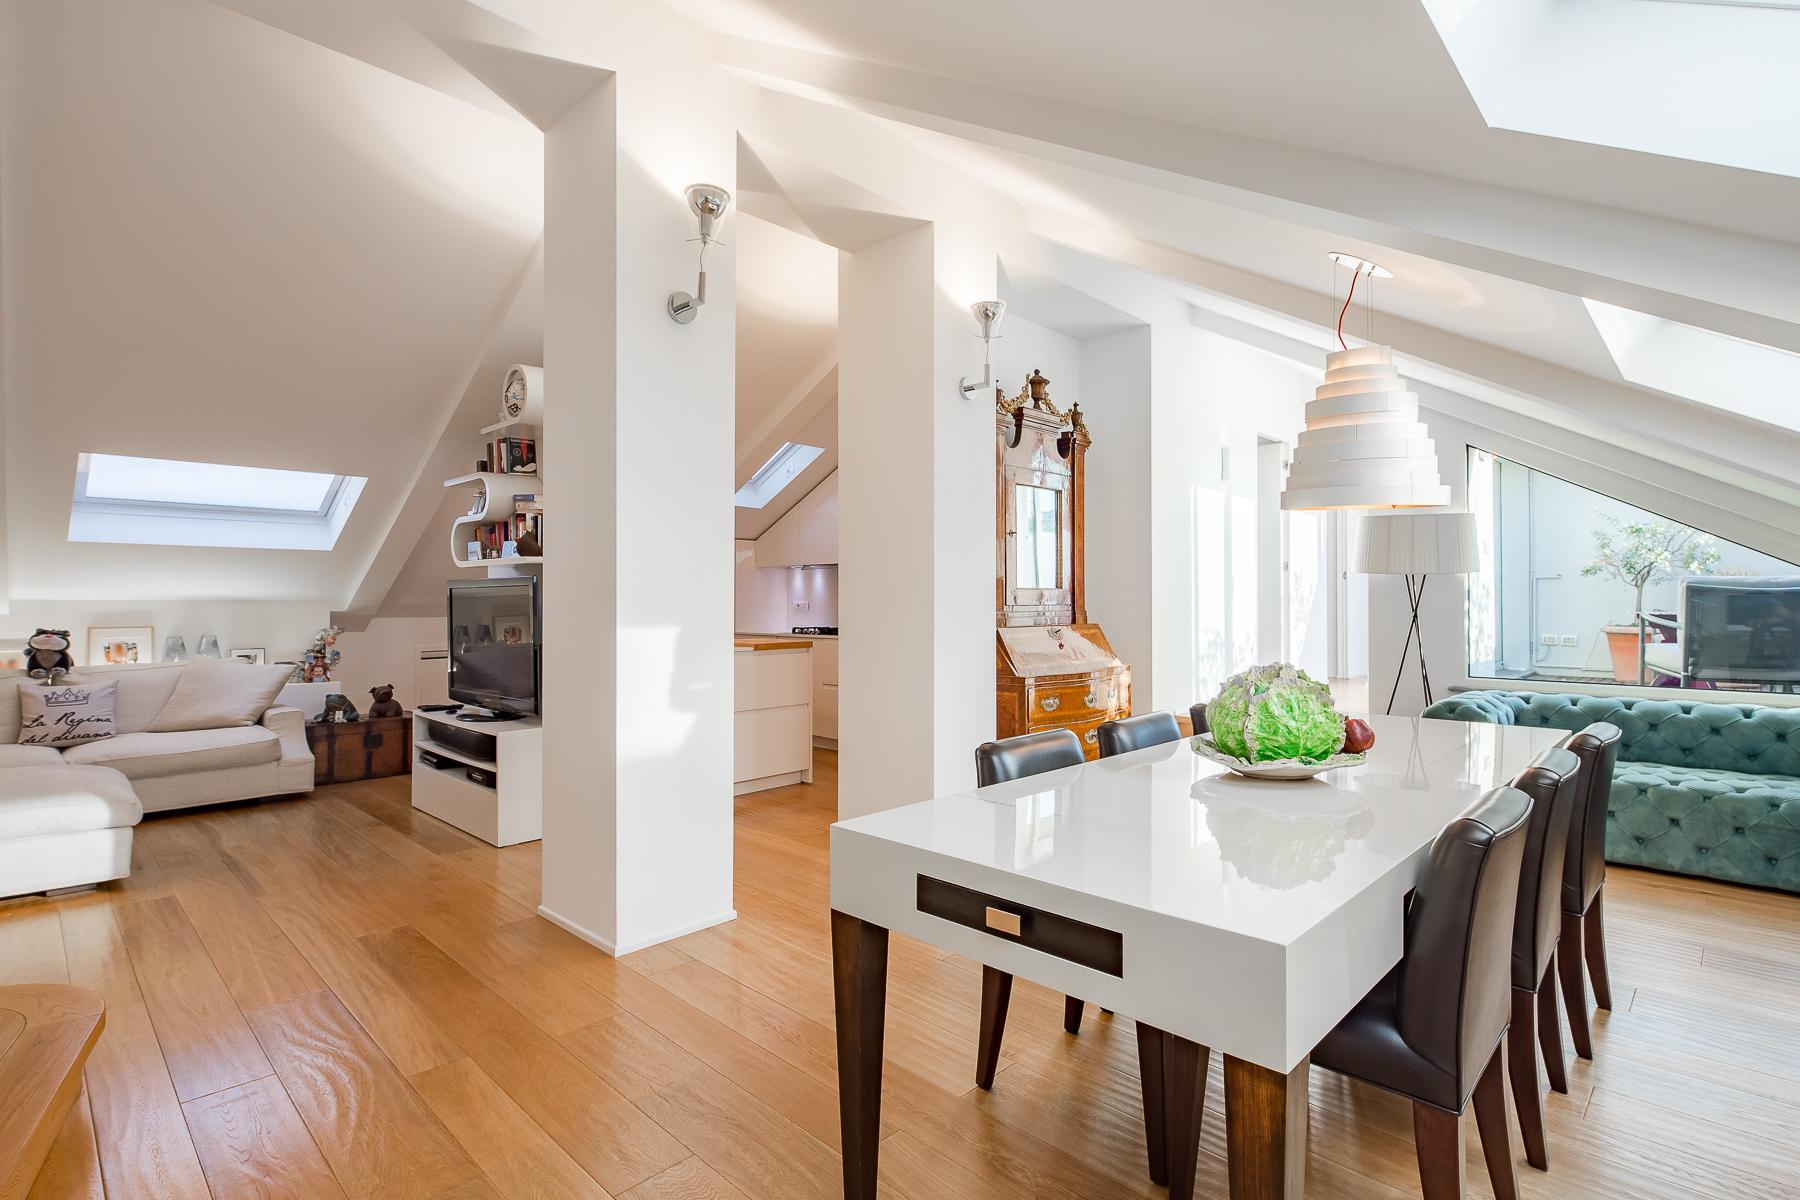 Charming penthouse with roof terrace in an elegant historic building - 6